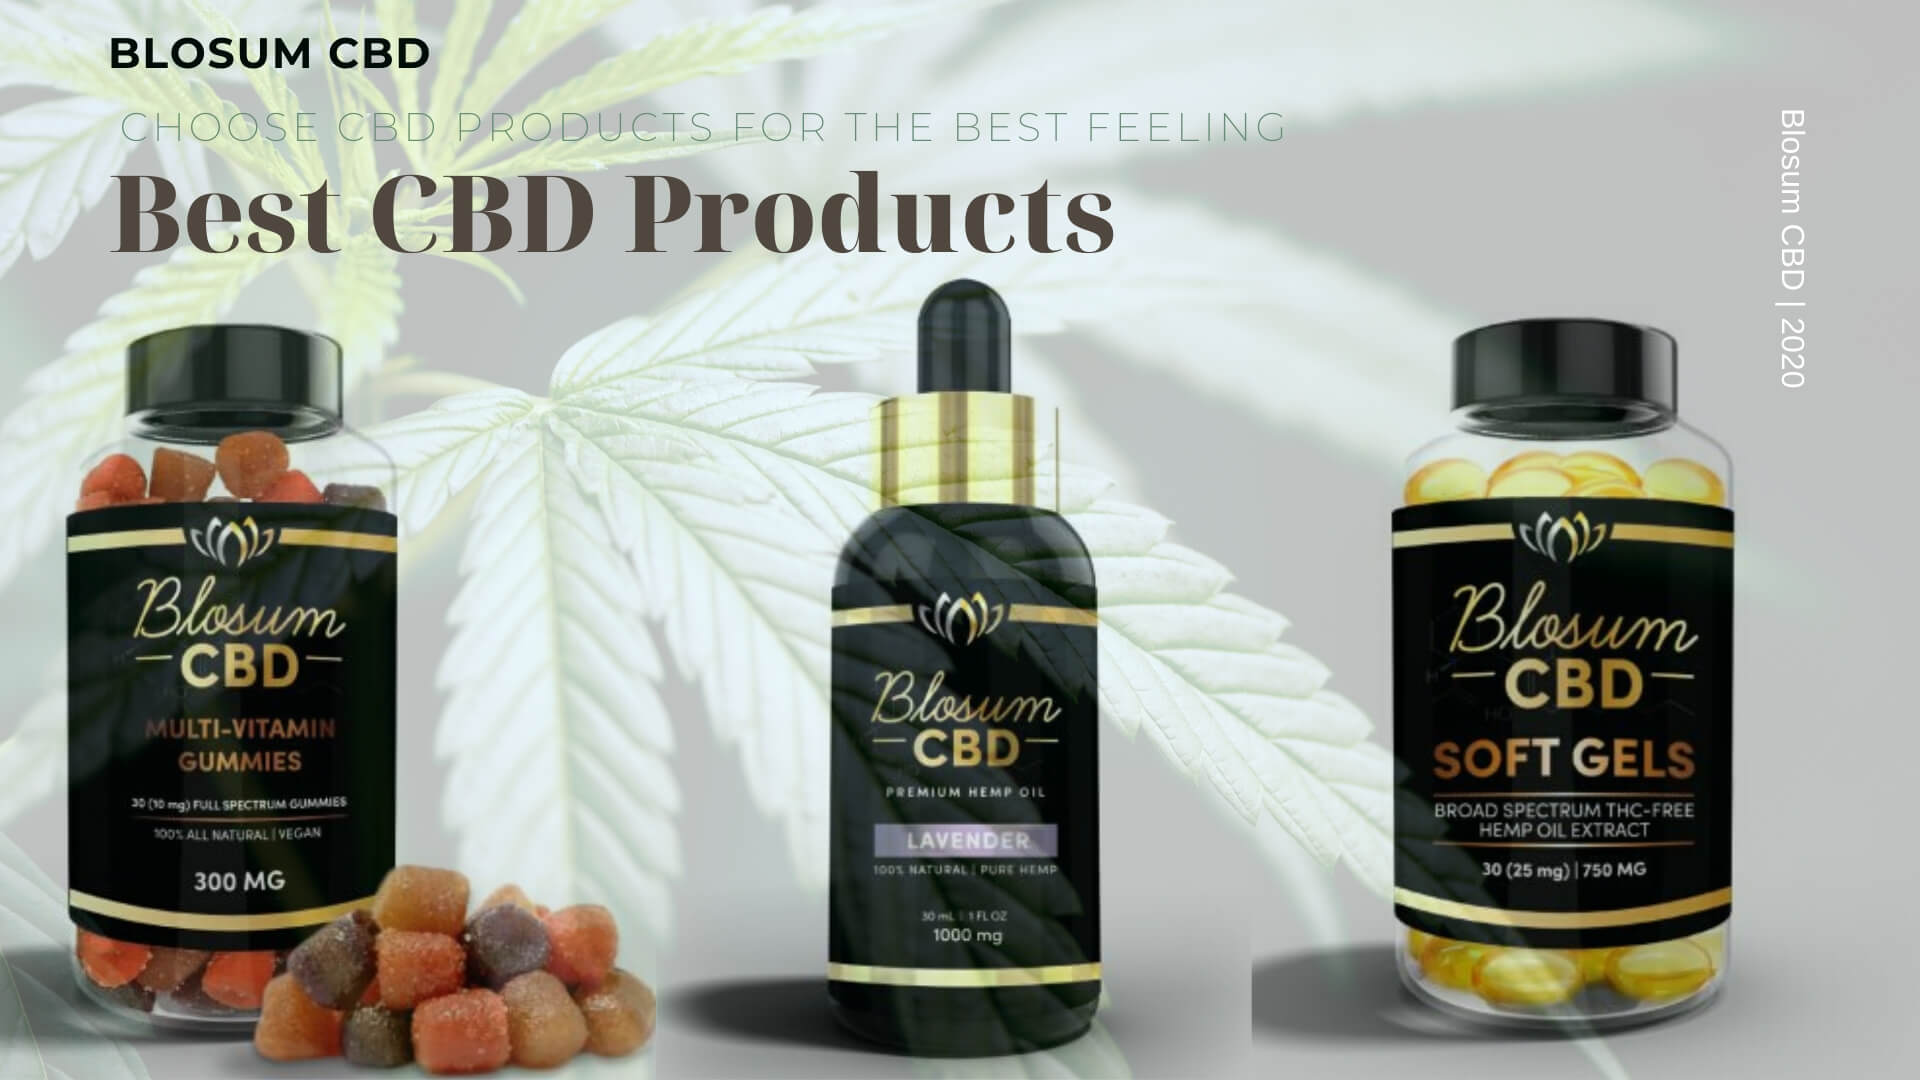 BEST CBD PRODUCTS FOR THE BEST FEELING